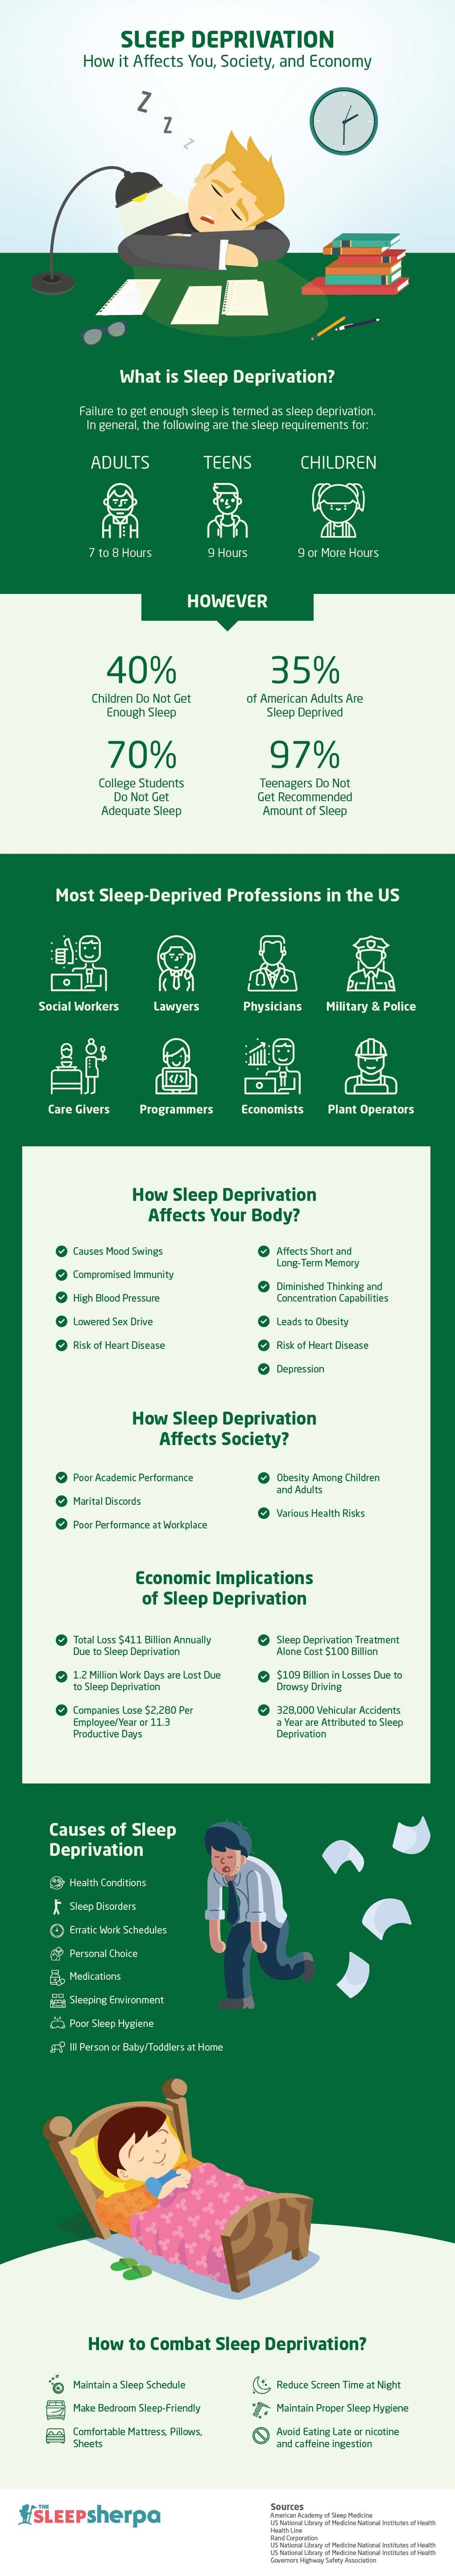 sleep deprivation effects infographic